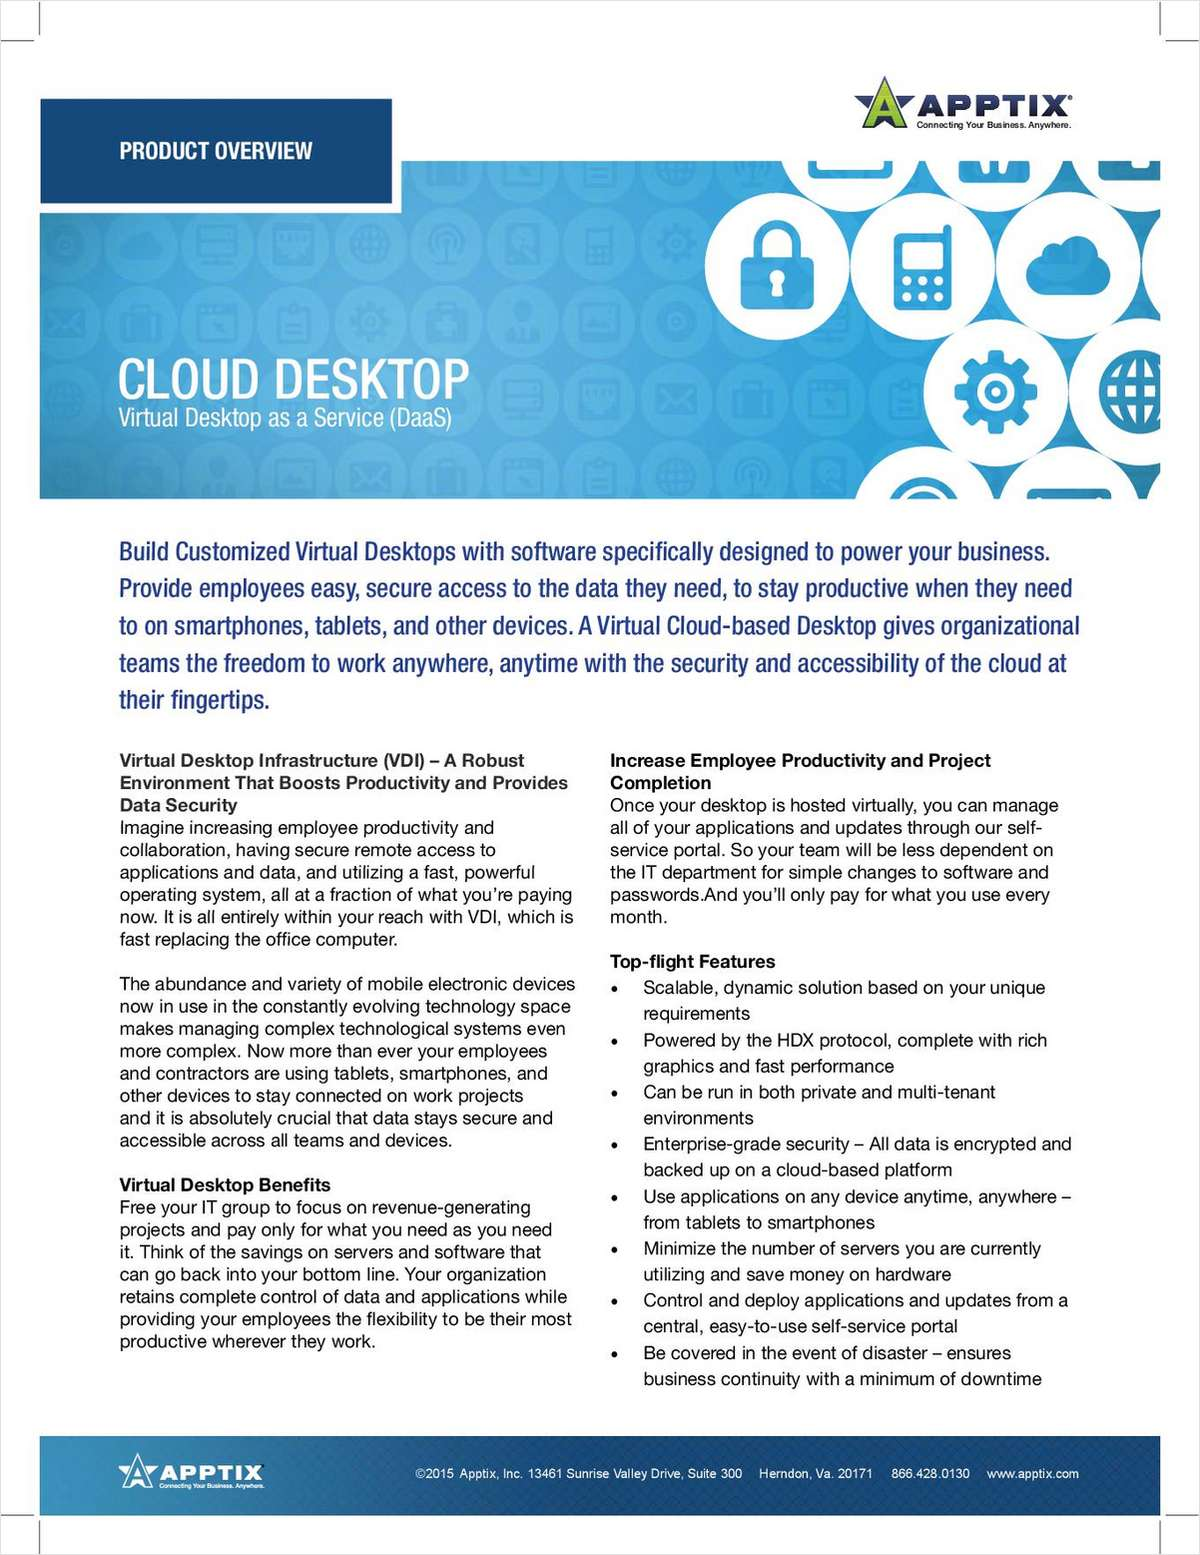 Virtual Desktop Infrastructure (VDI) - A Robust Environment That Boosts Productivity and Provides Data Security